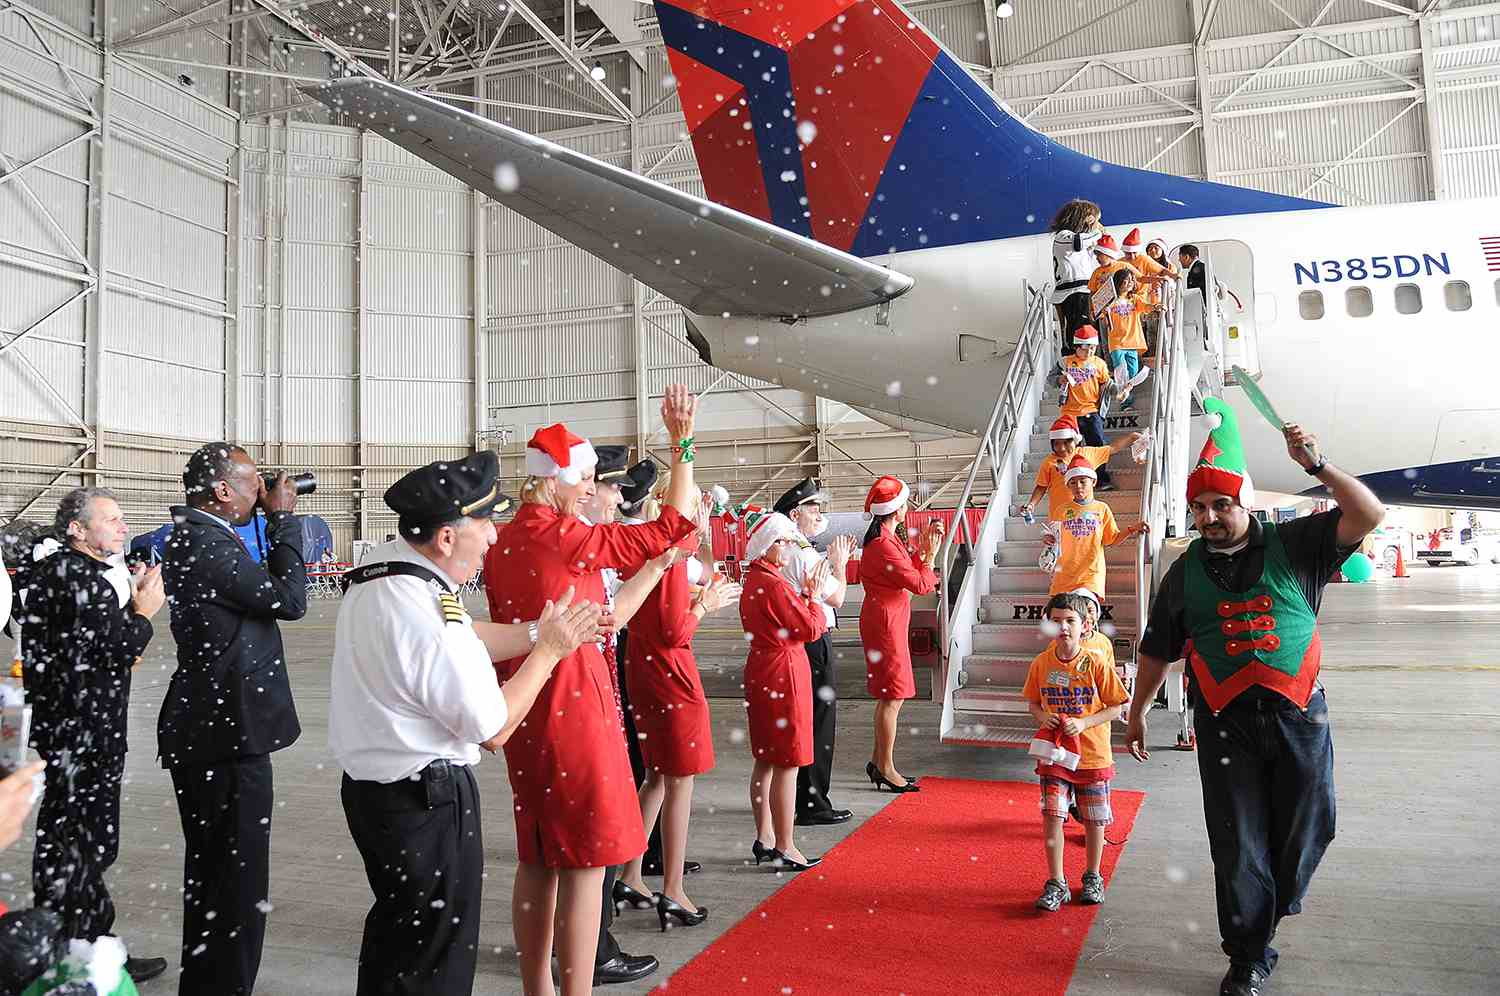 Sarah Hyland And Jordin Sparks Join Delta Air Lines' Annual Holiday In The Hangar Celebration